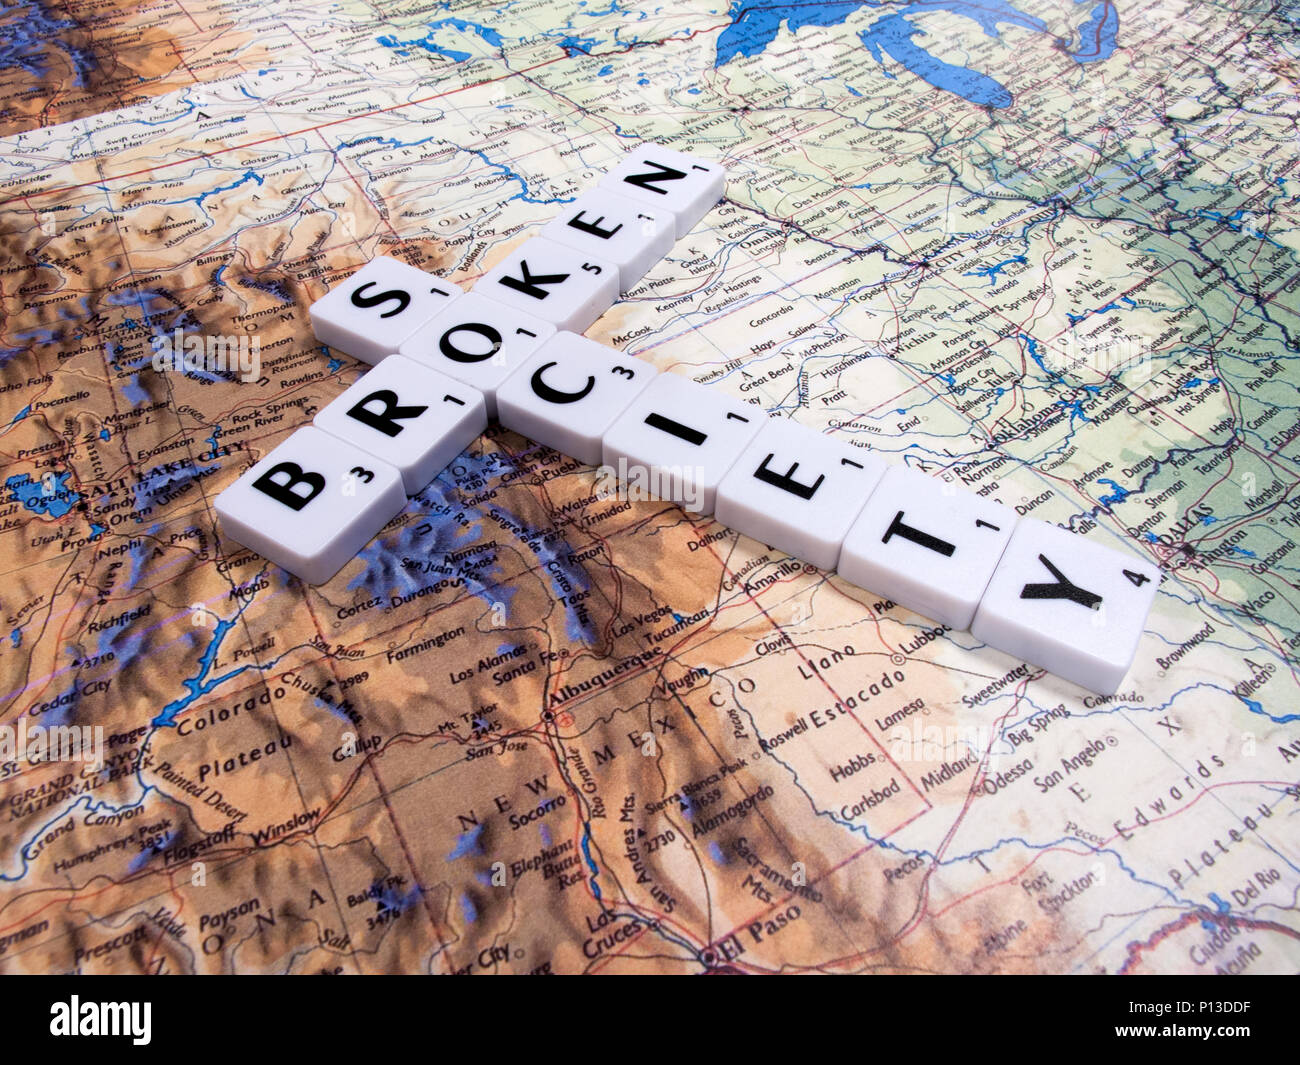 representation of broken society, a perceived or apparent general decline in moral values, with United States of America map background - Stock Image